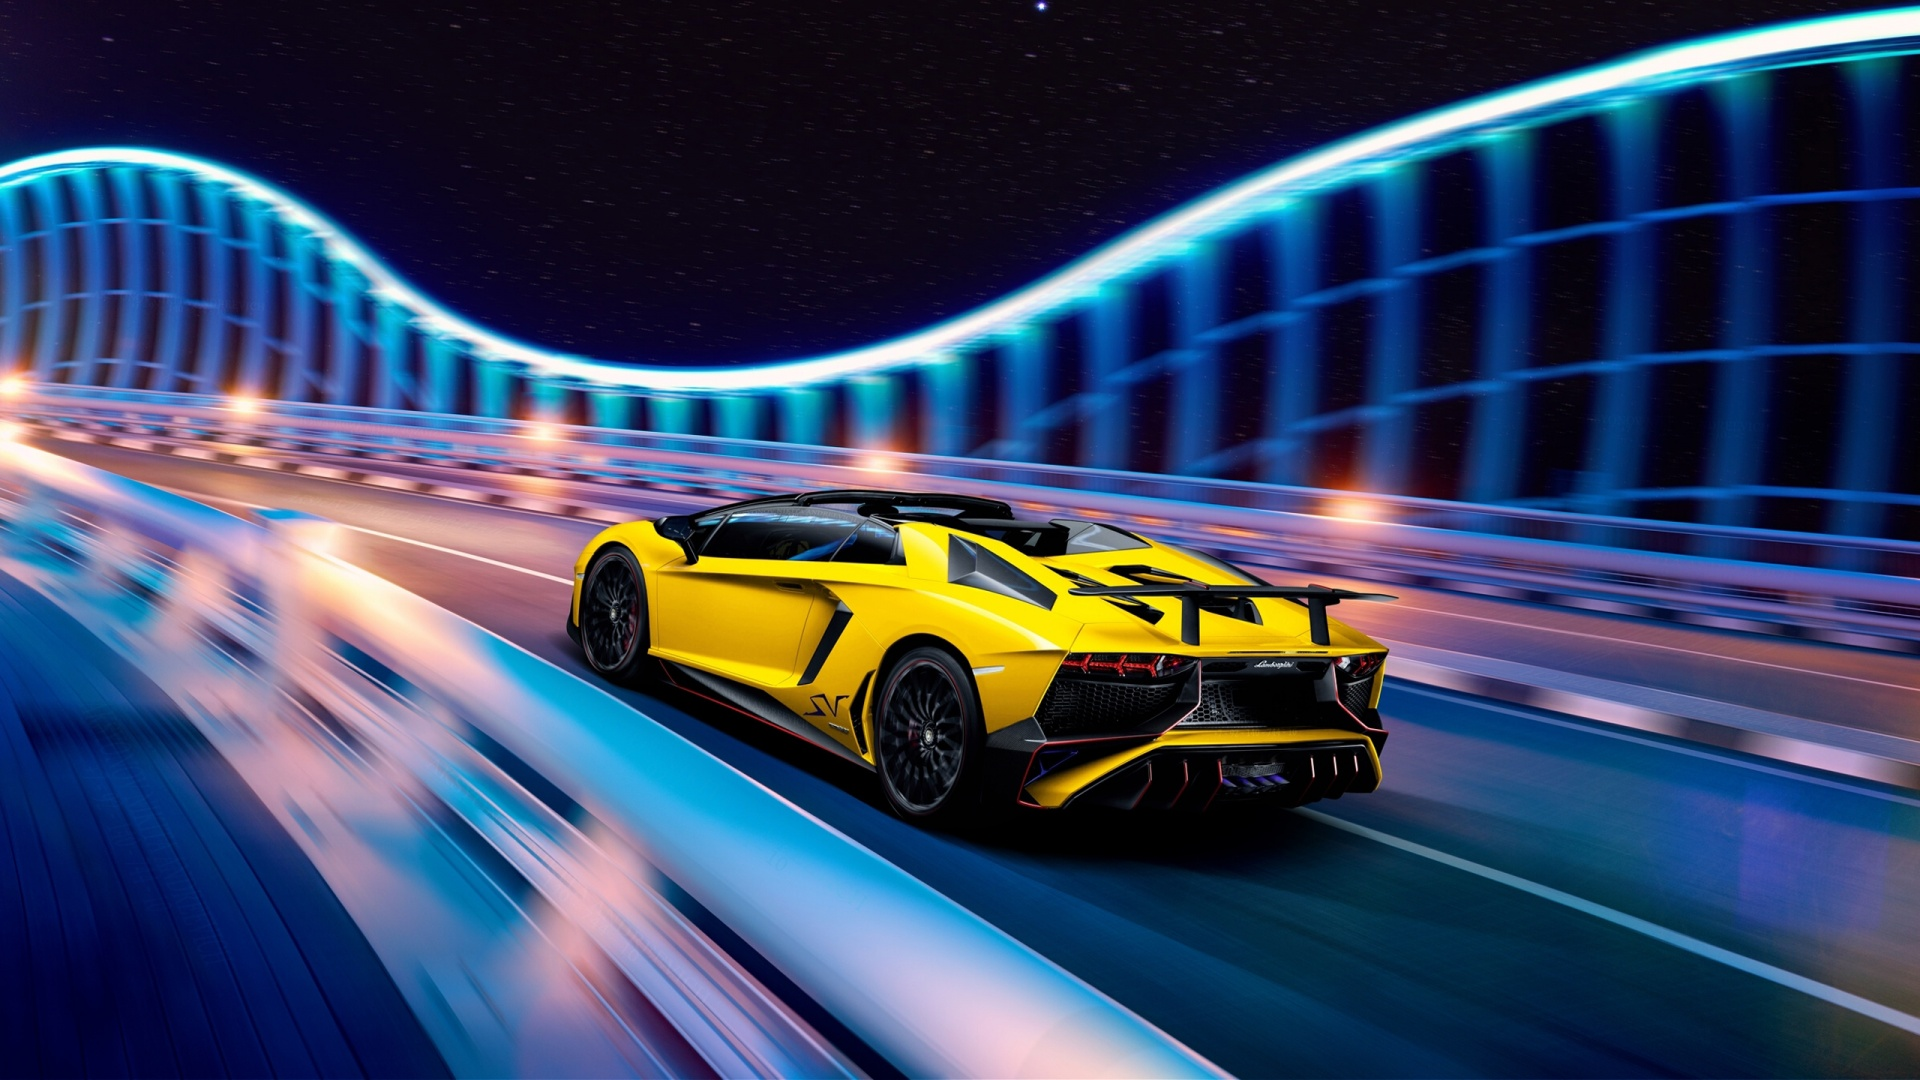 2016 lamborghini aventador lp750 4 superveloce roadster wallpapers